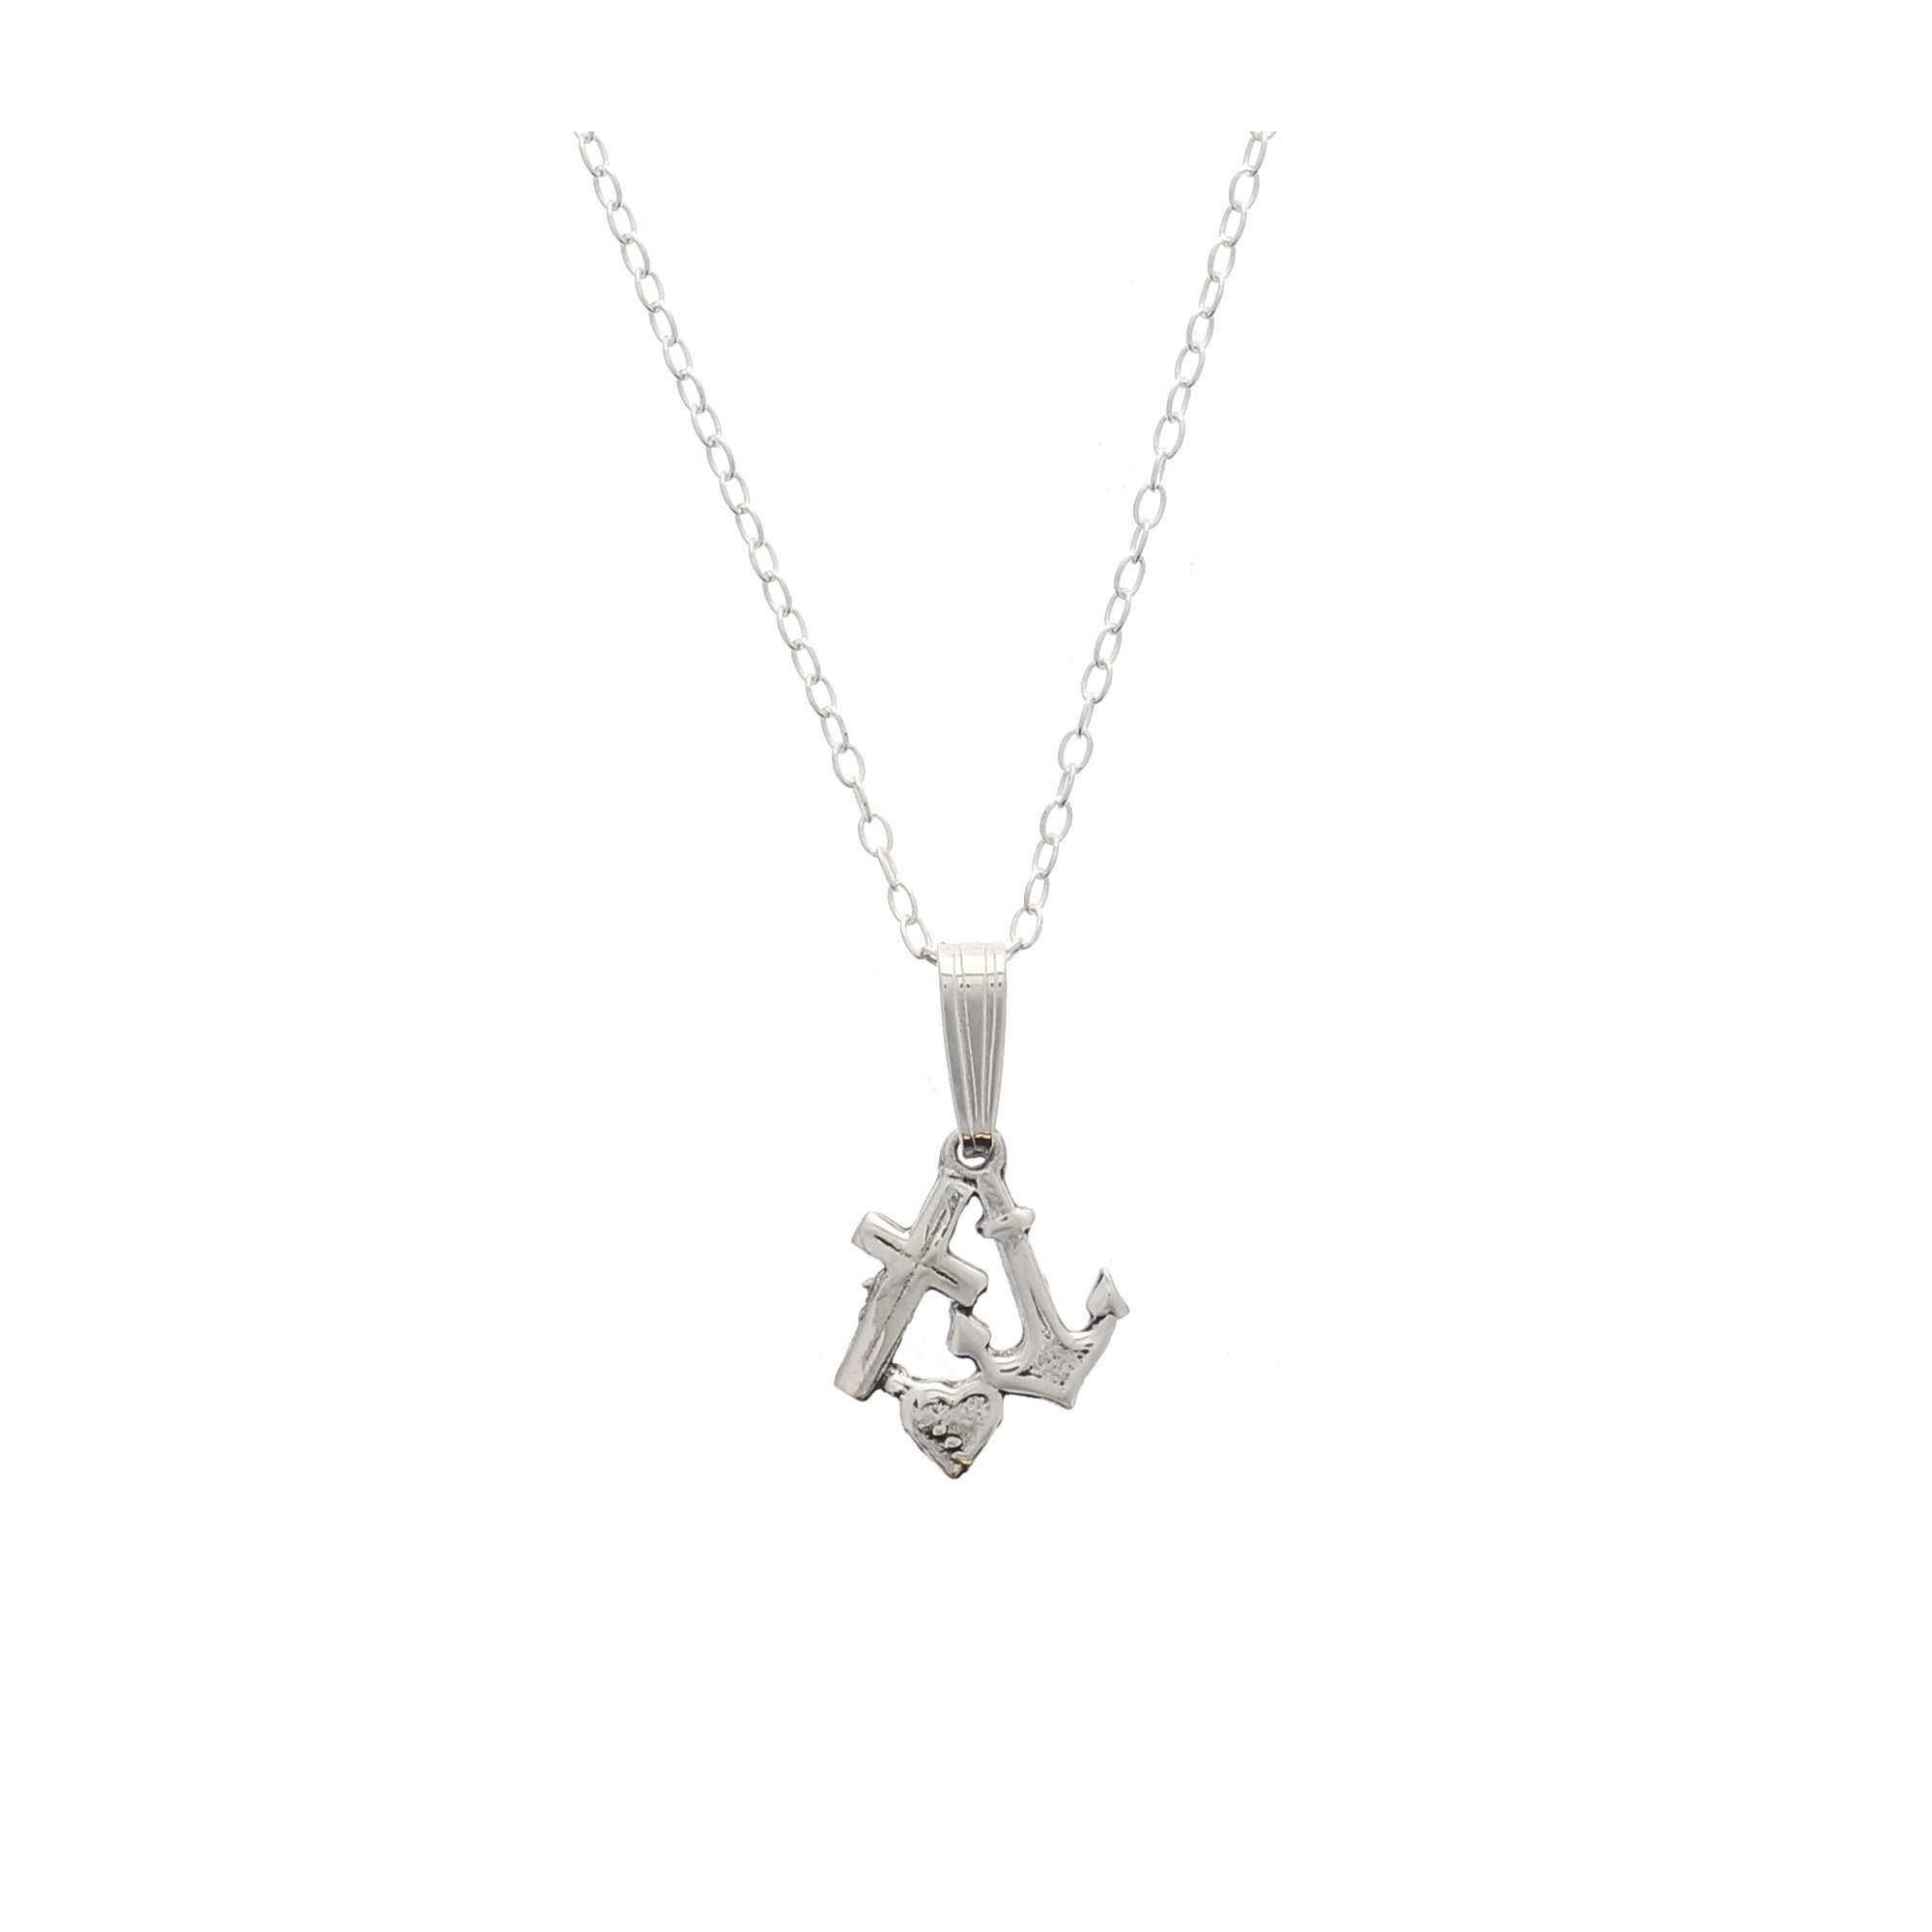 r leaf necklace meaningful f watch nar silver c creo jewel